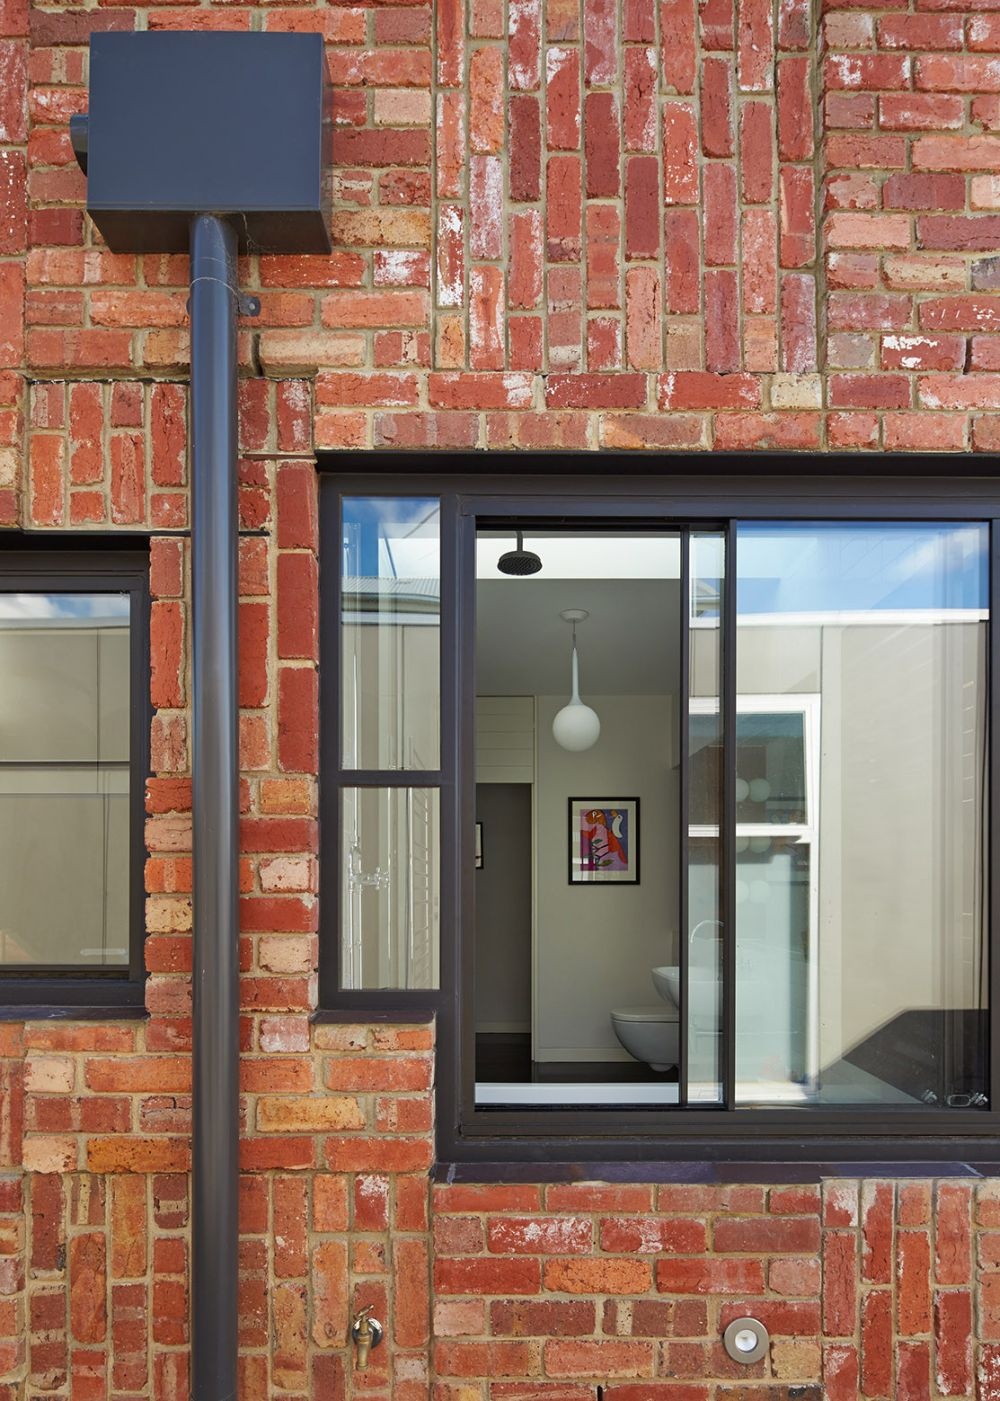 The Cubo House in Australia with Brick Facade